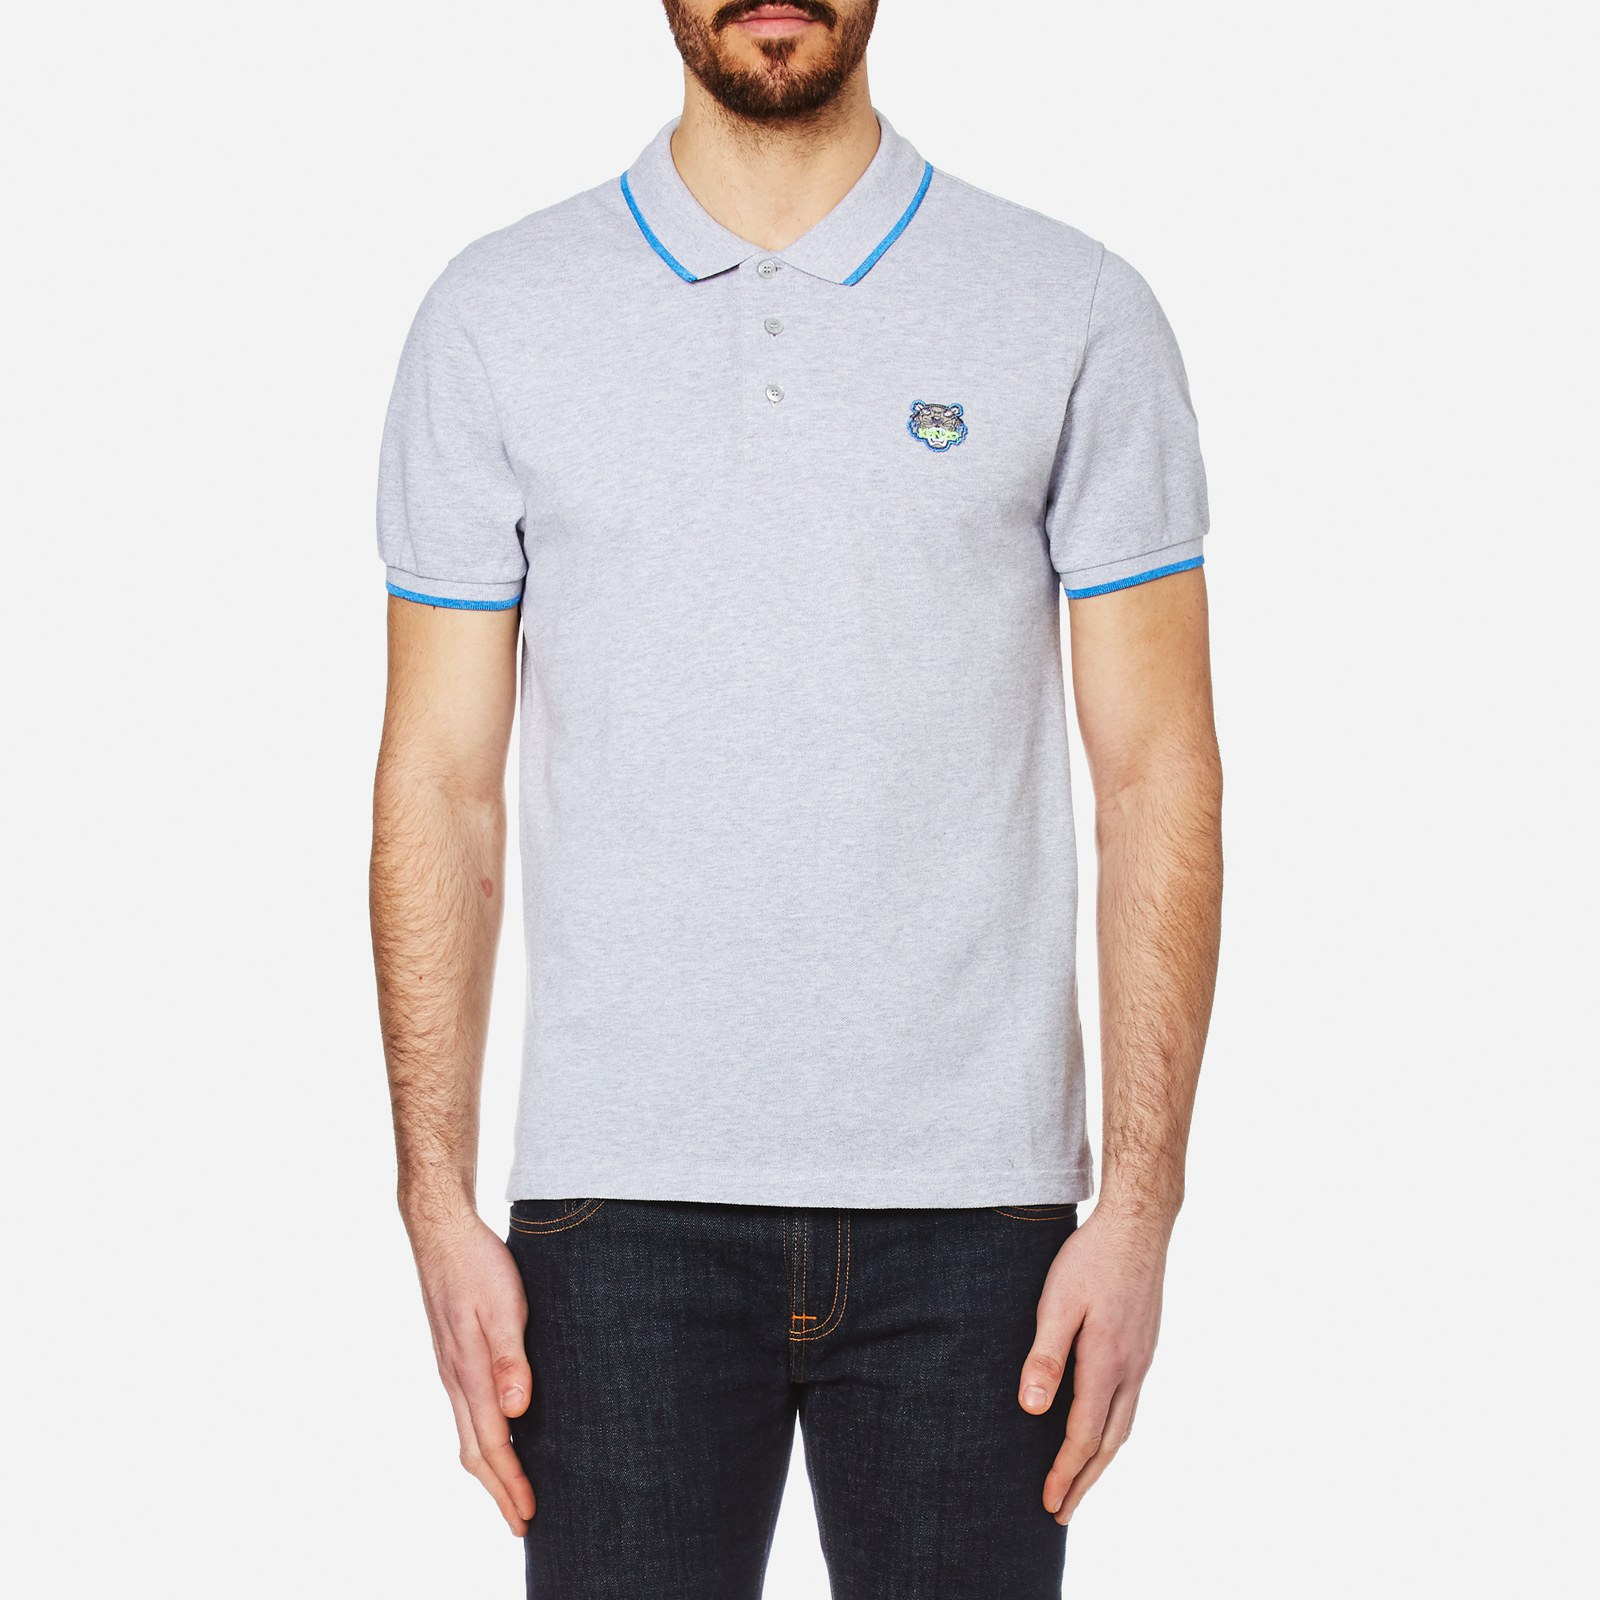 58ee7543af KENZO Men's Cotton Pique Tiger Polo Shirt - Pearl Grey - Free UK ...